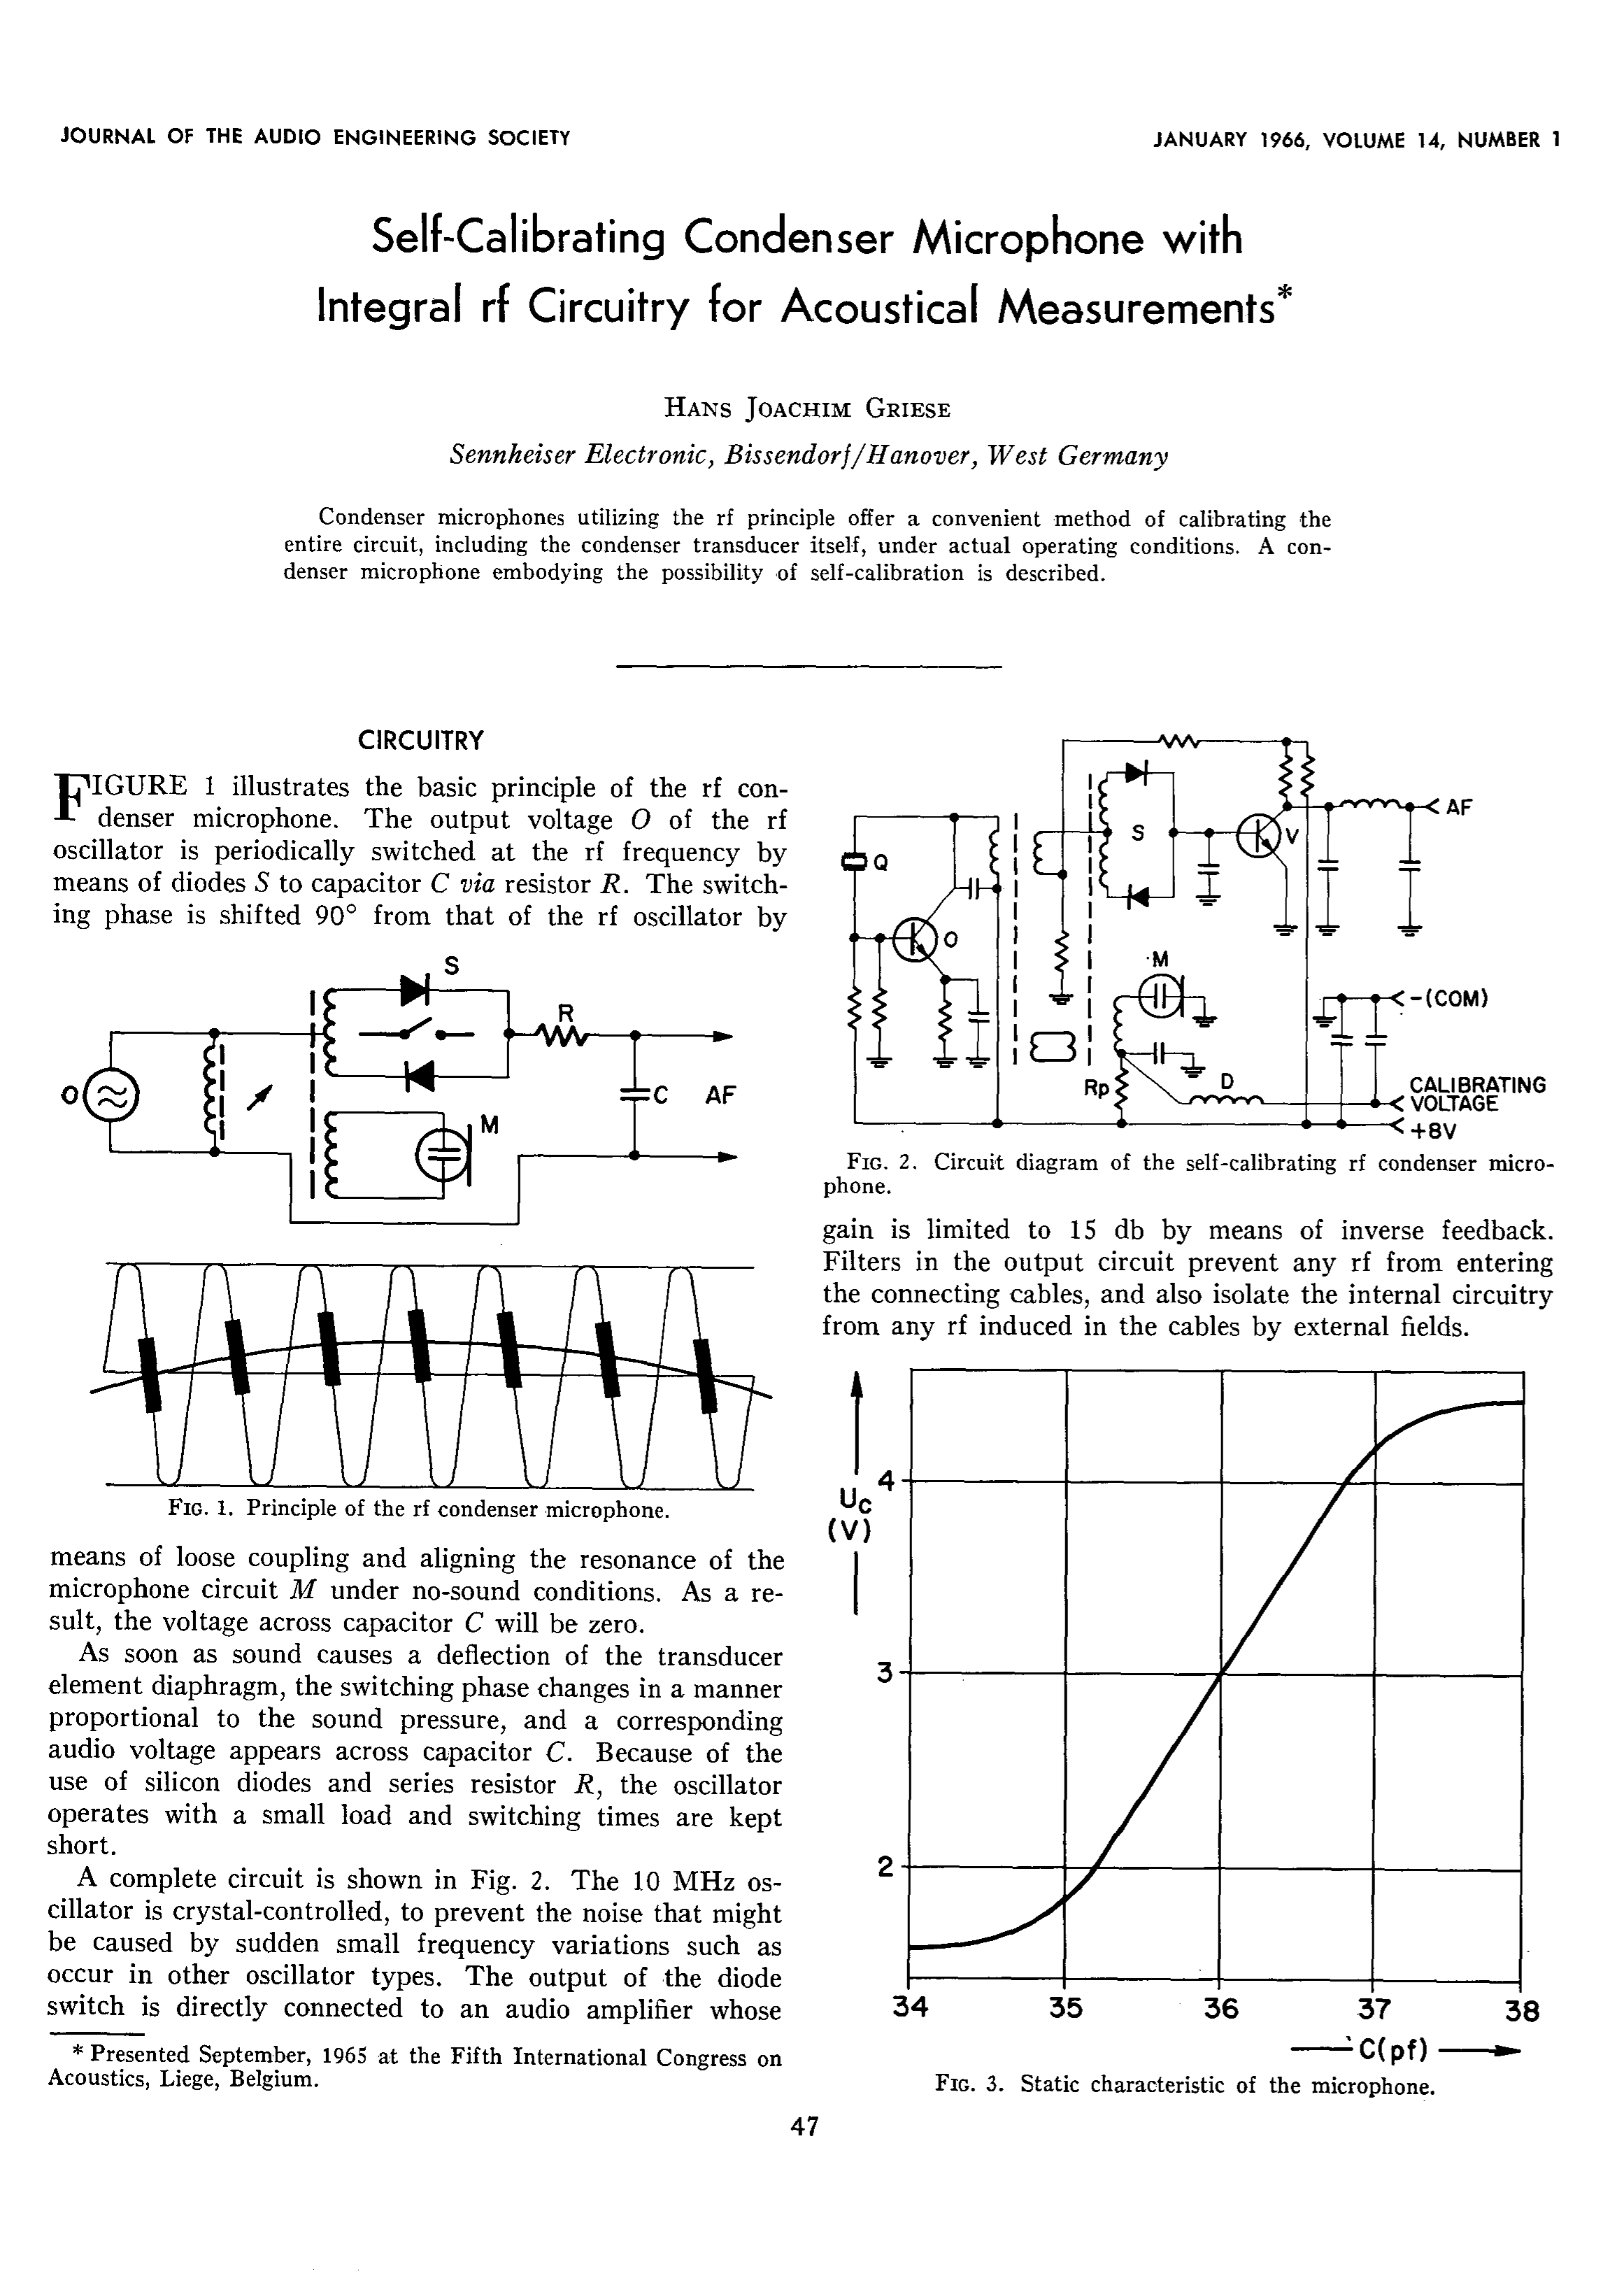 Aes E Library Self Calibrating Condenser Microphones With Sennheiser Microphone Wiring Diagram Integrated R F Circuitry For Acoustical Measurements